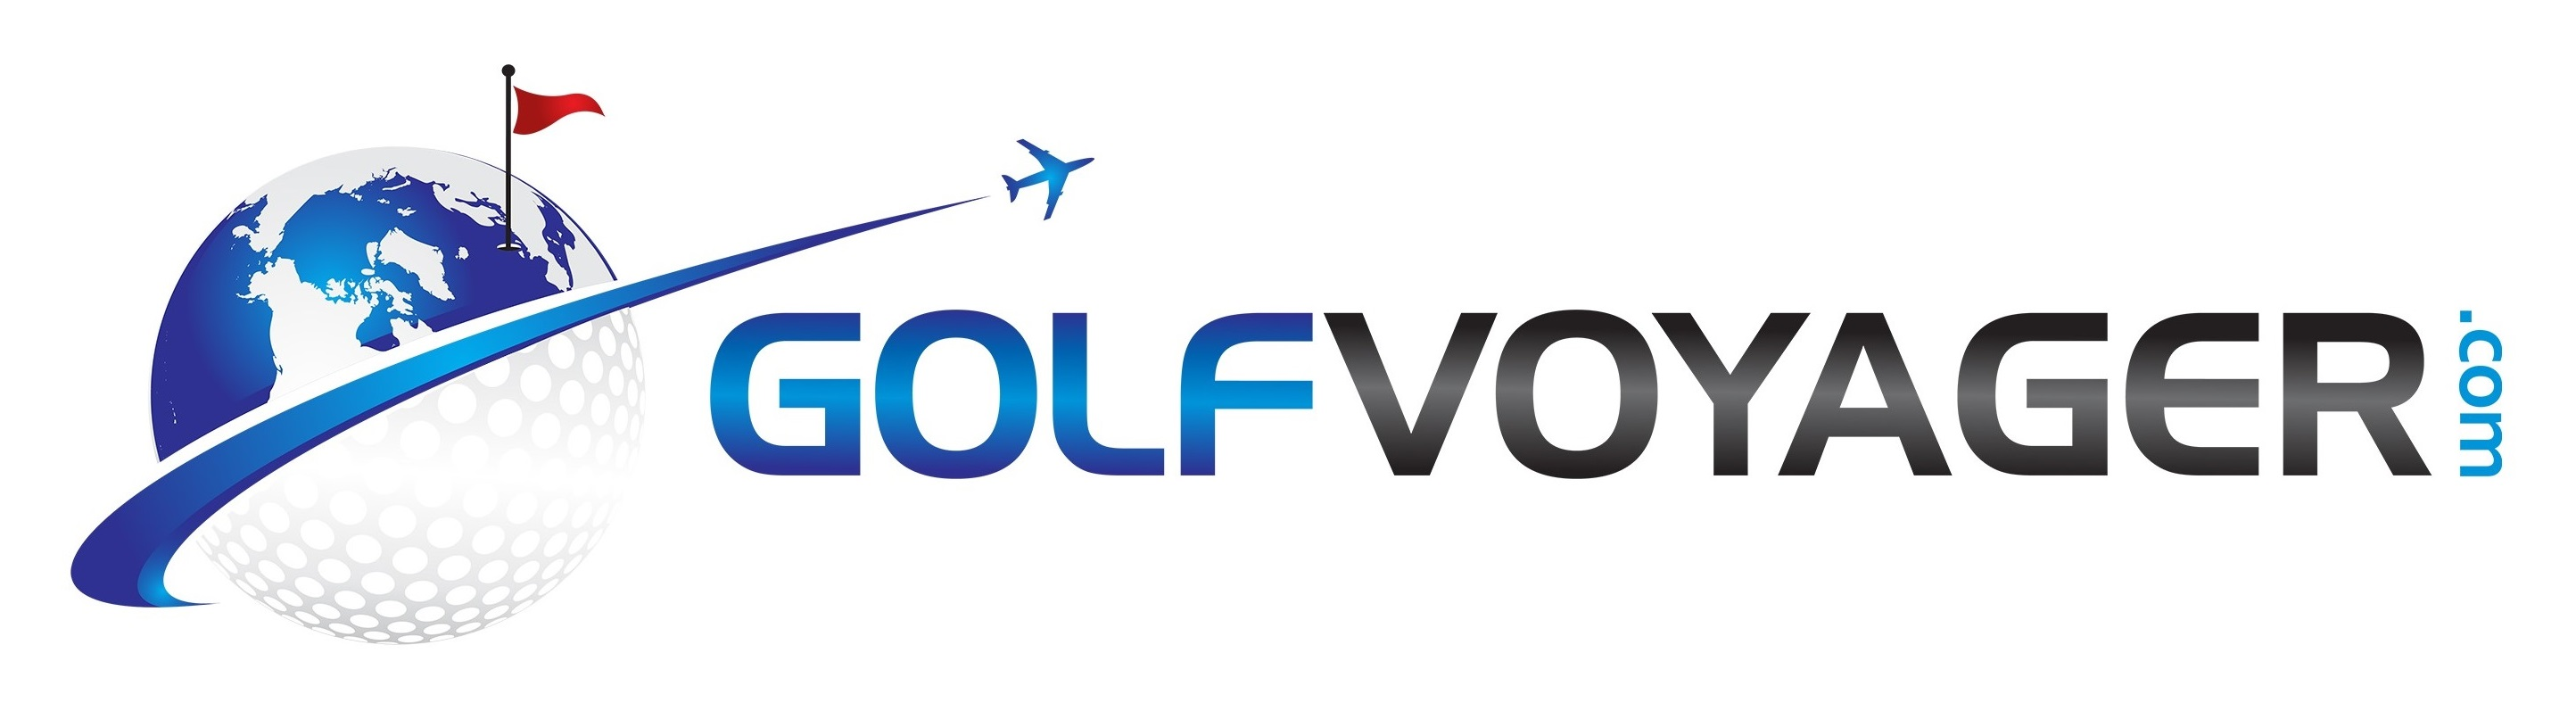 Golf Voyager Finalist of the ITB China Startup Awards 2017